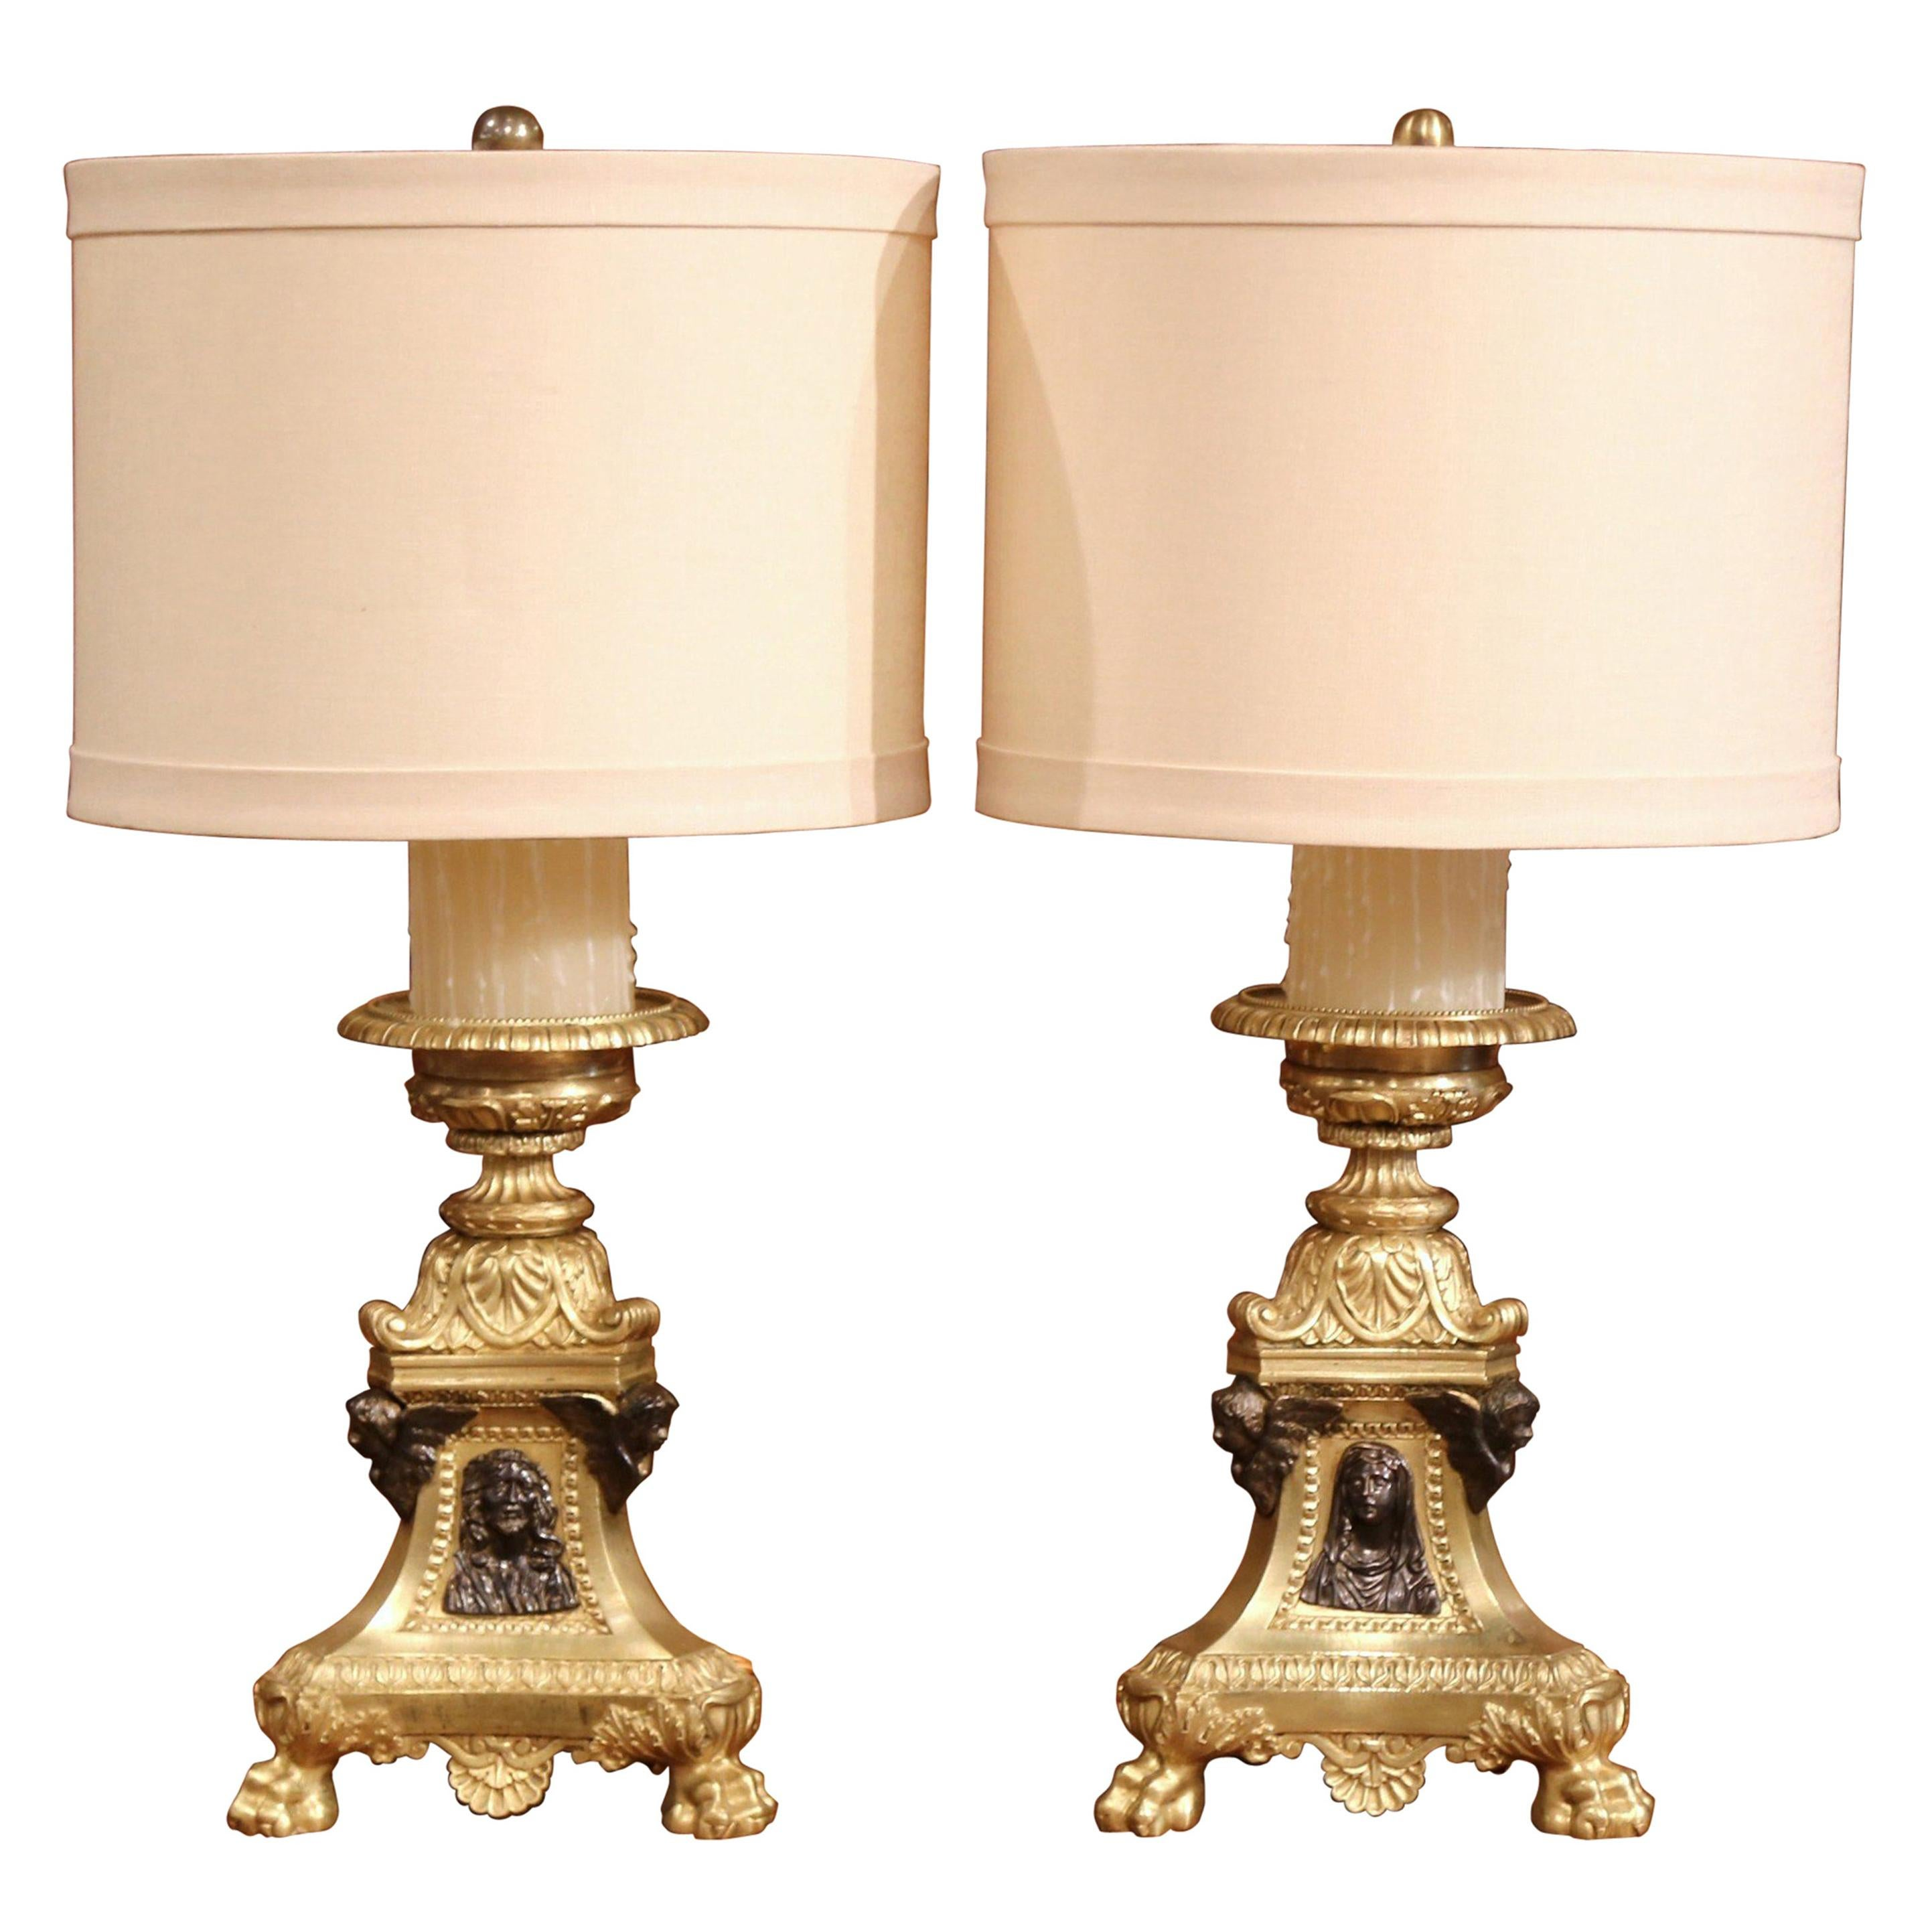 Pair of 19th Century French Two-Tone Bronze Candlesticks Made into Table Lamps